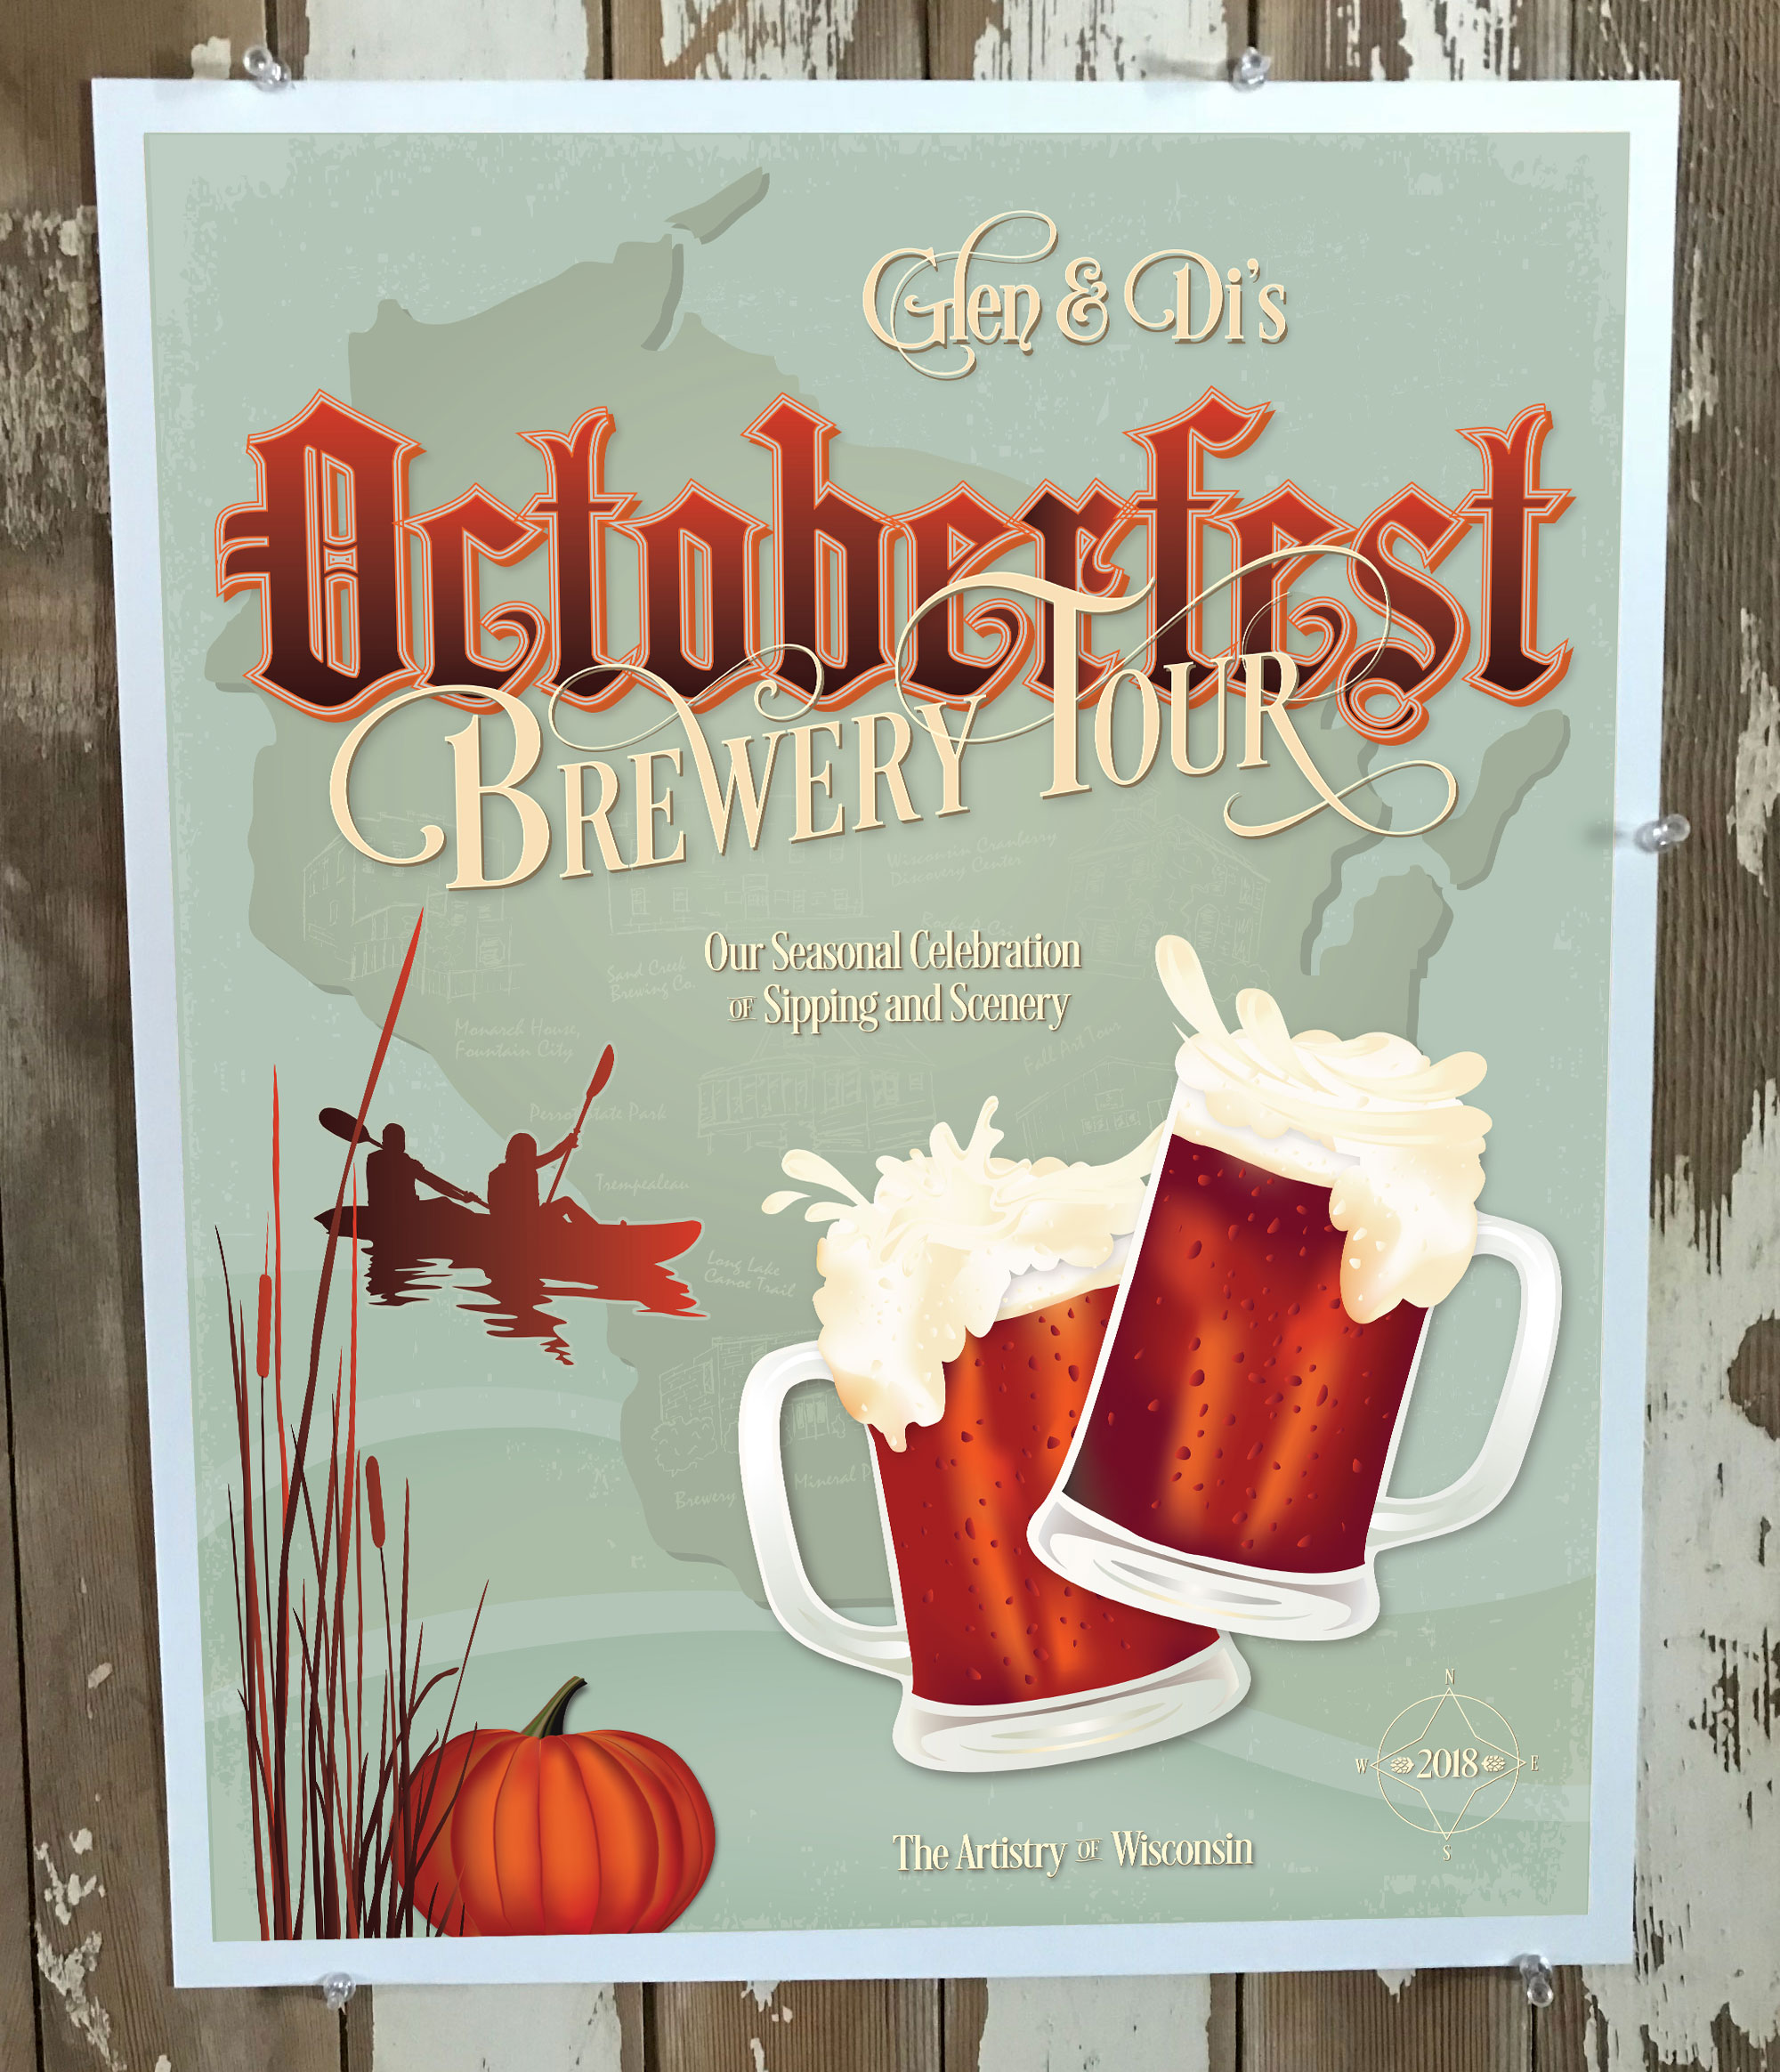 Octoberfest Brewery Tour promotional poster by Adunate